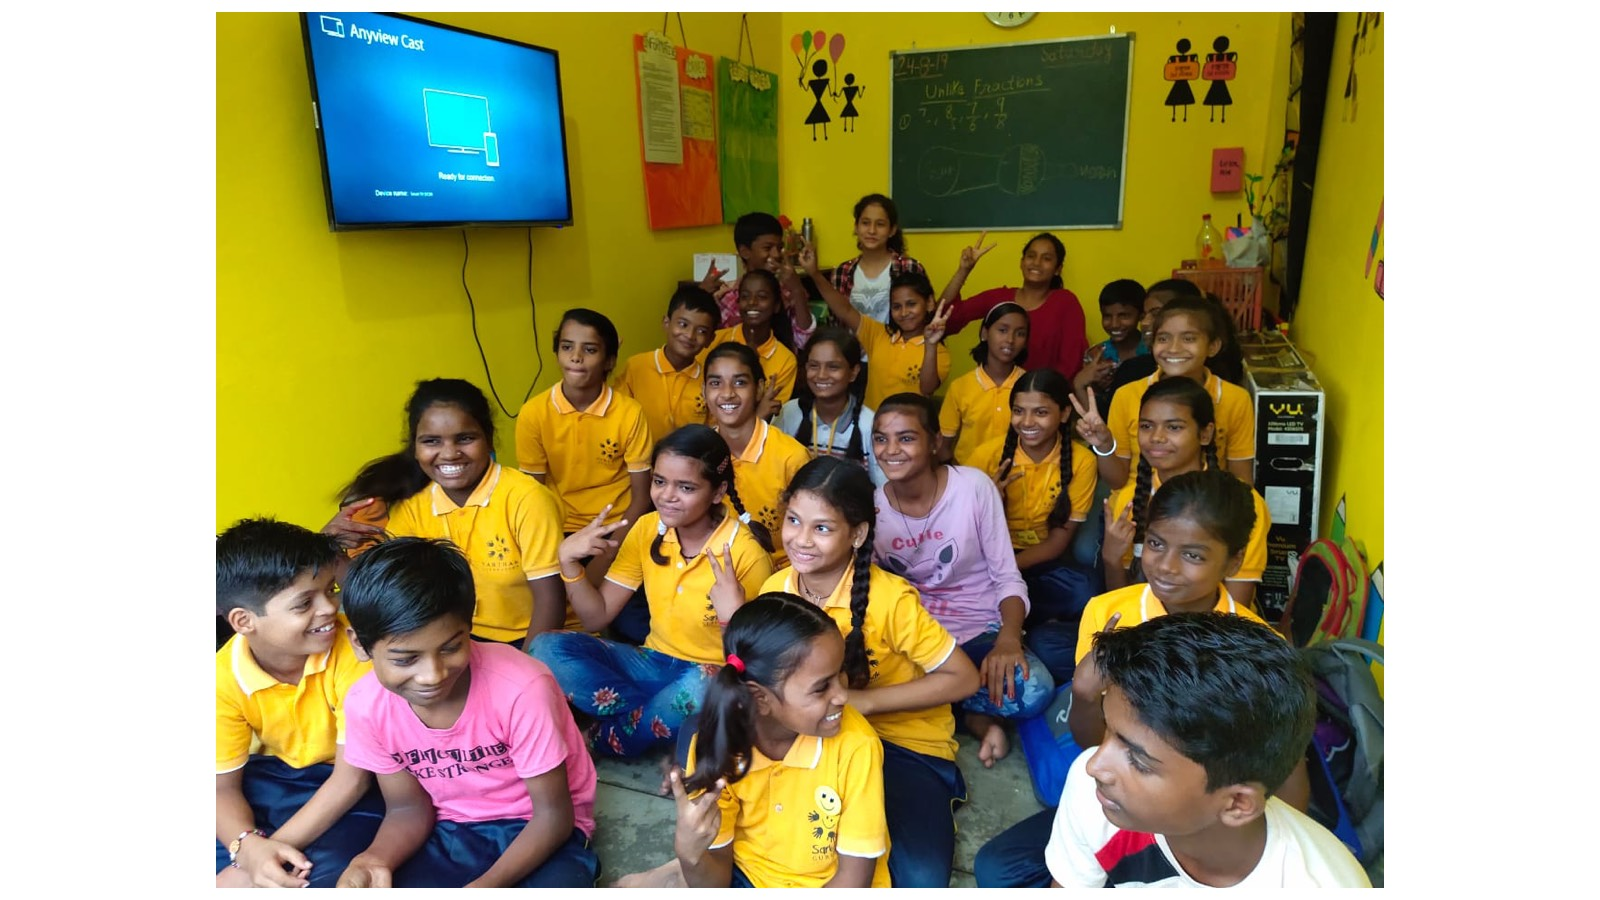 Yellow Rooms For Education and Socio-Emotional Well-Being of Children in Slums